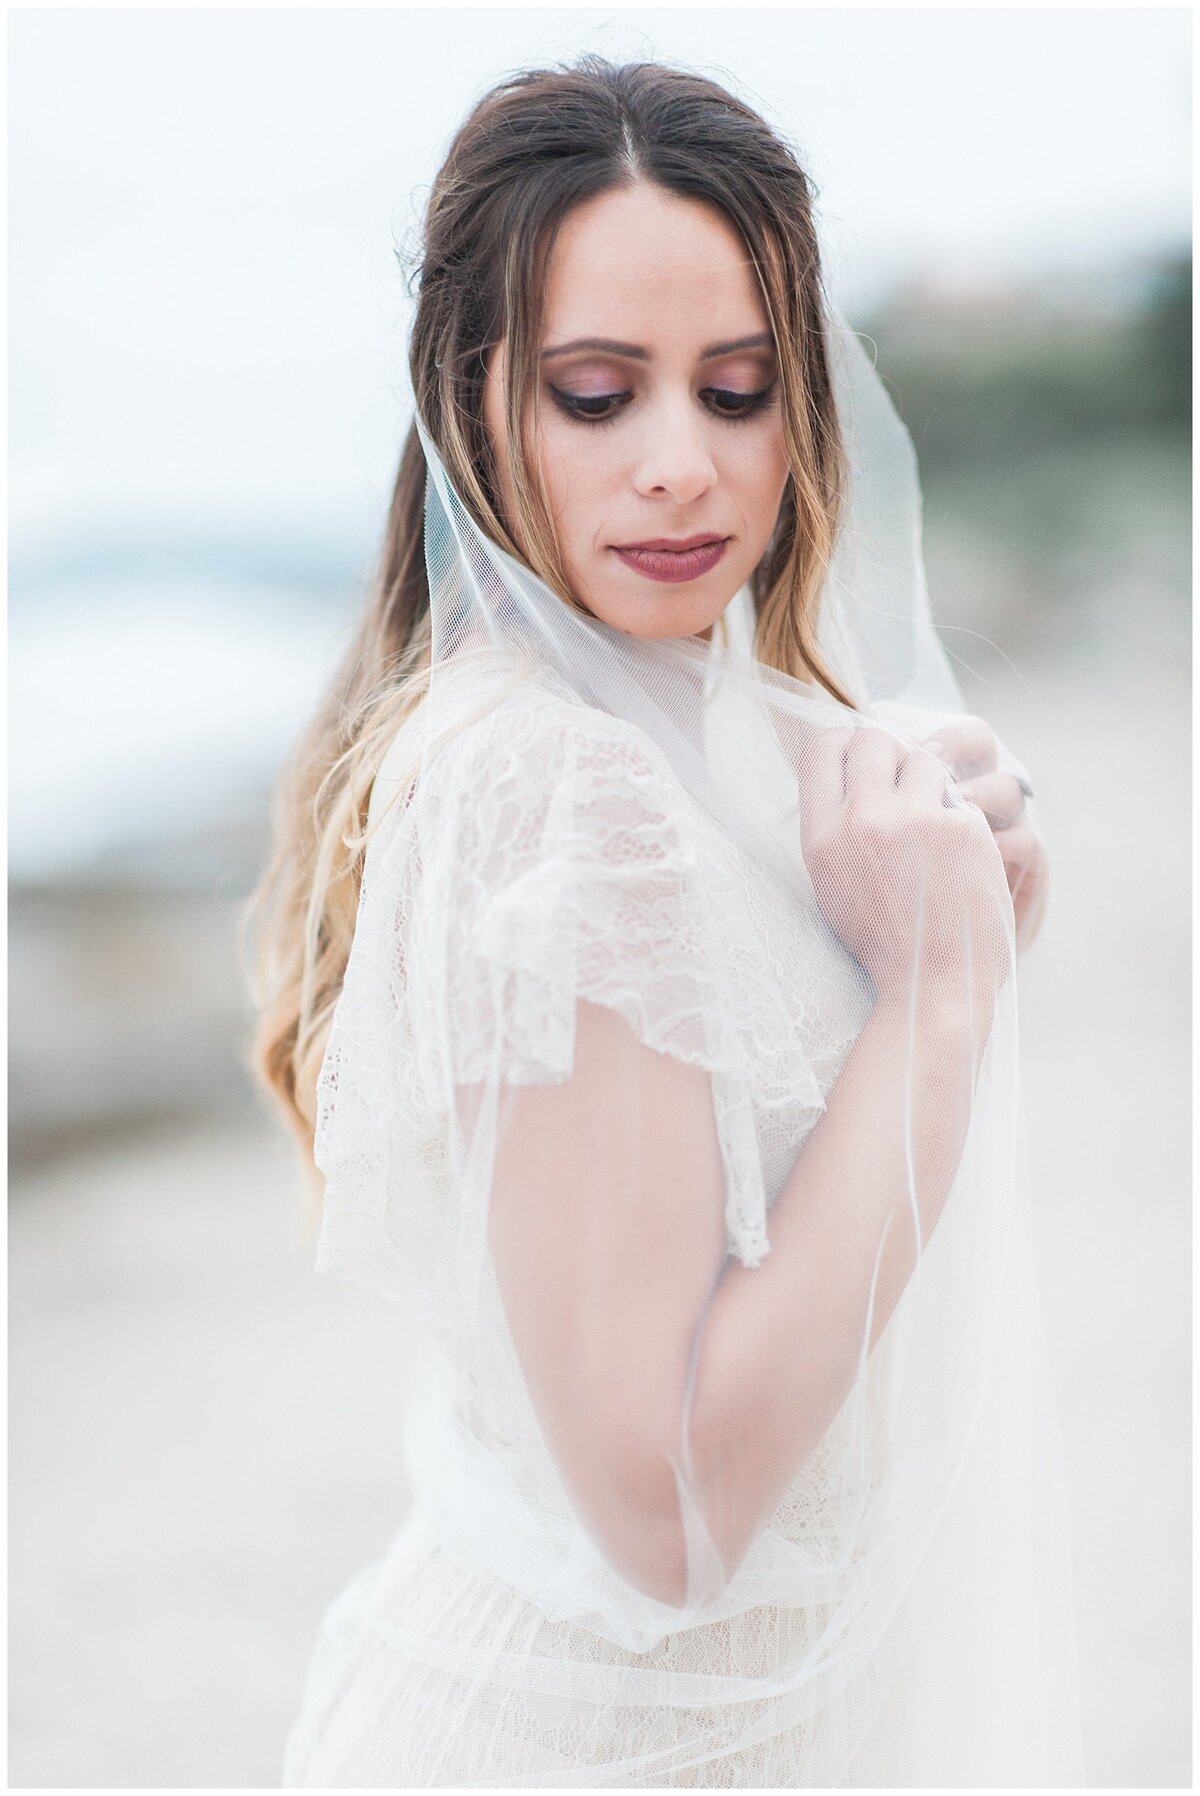 san clemente beach wedding elopement whimsical dreamy soft light socal photo049